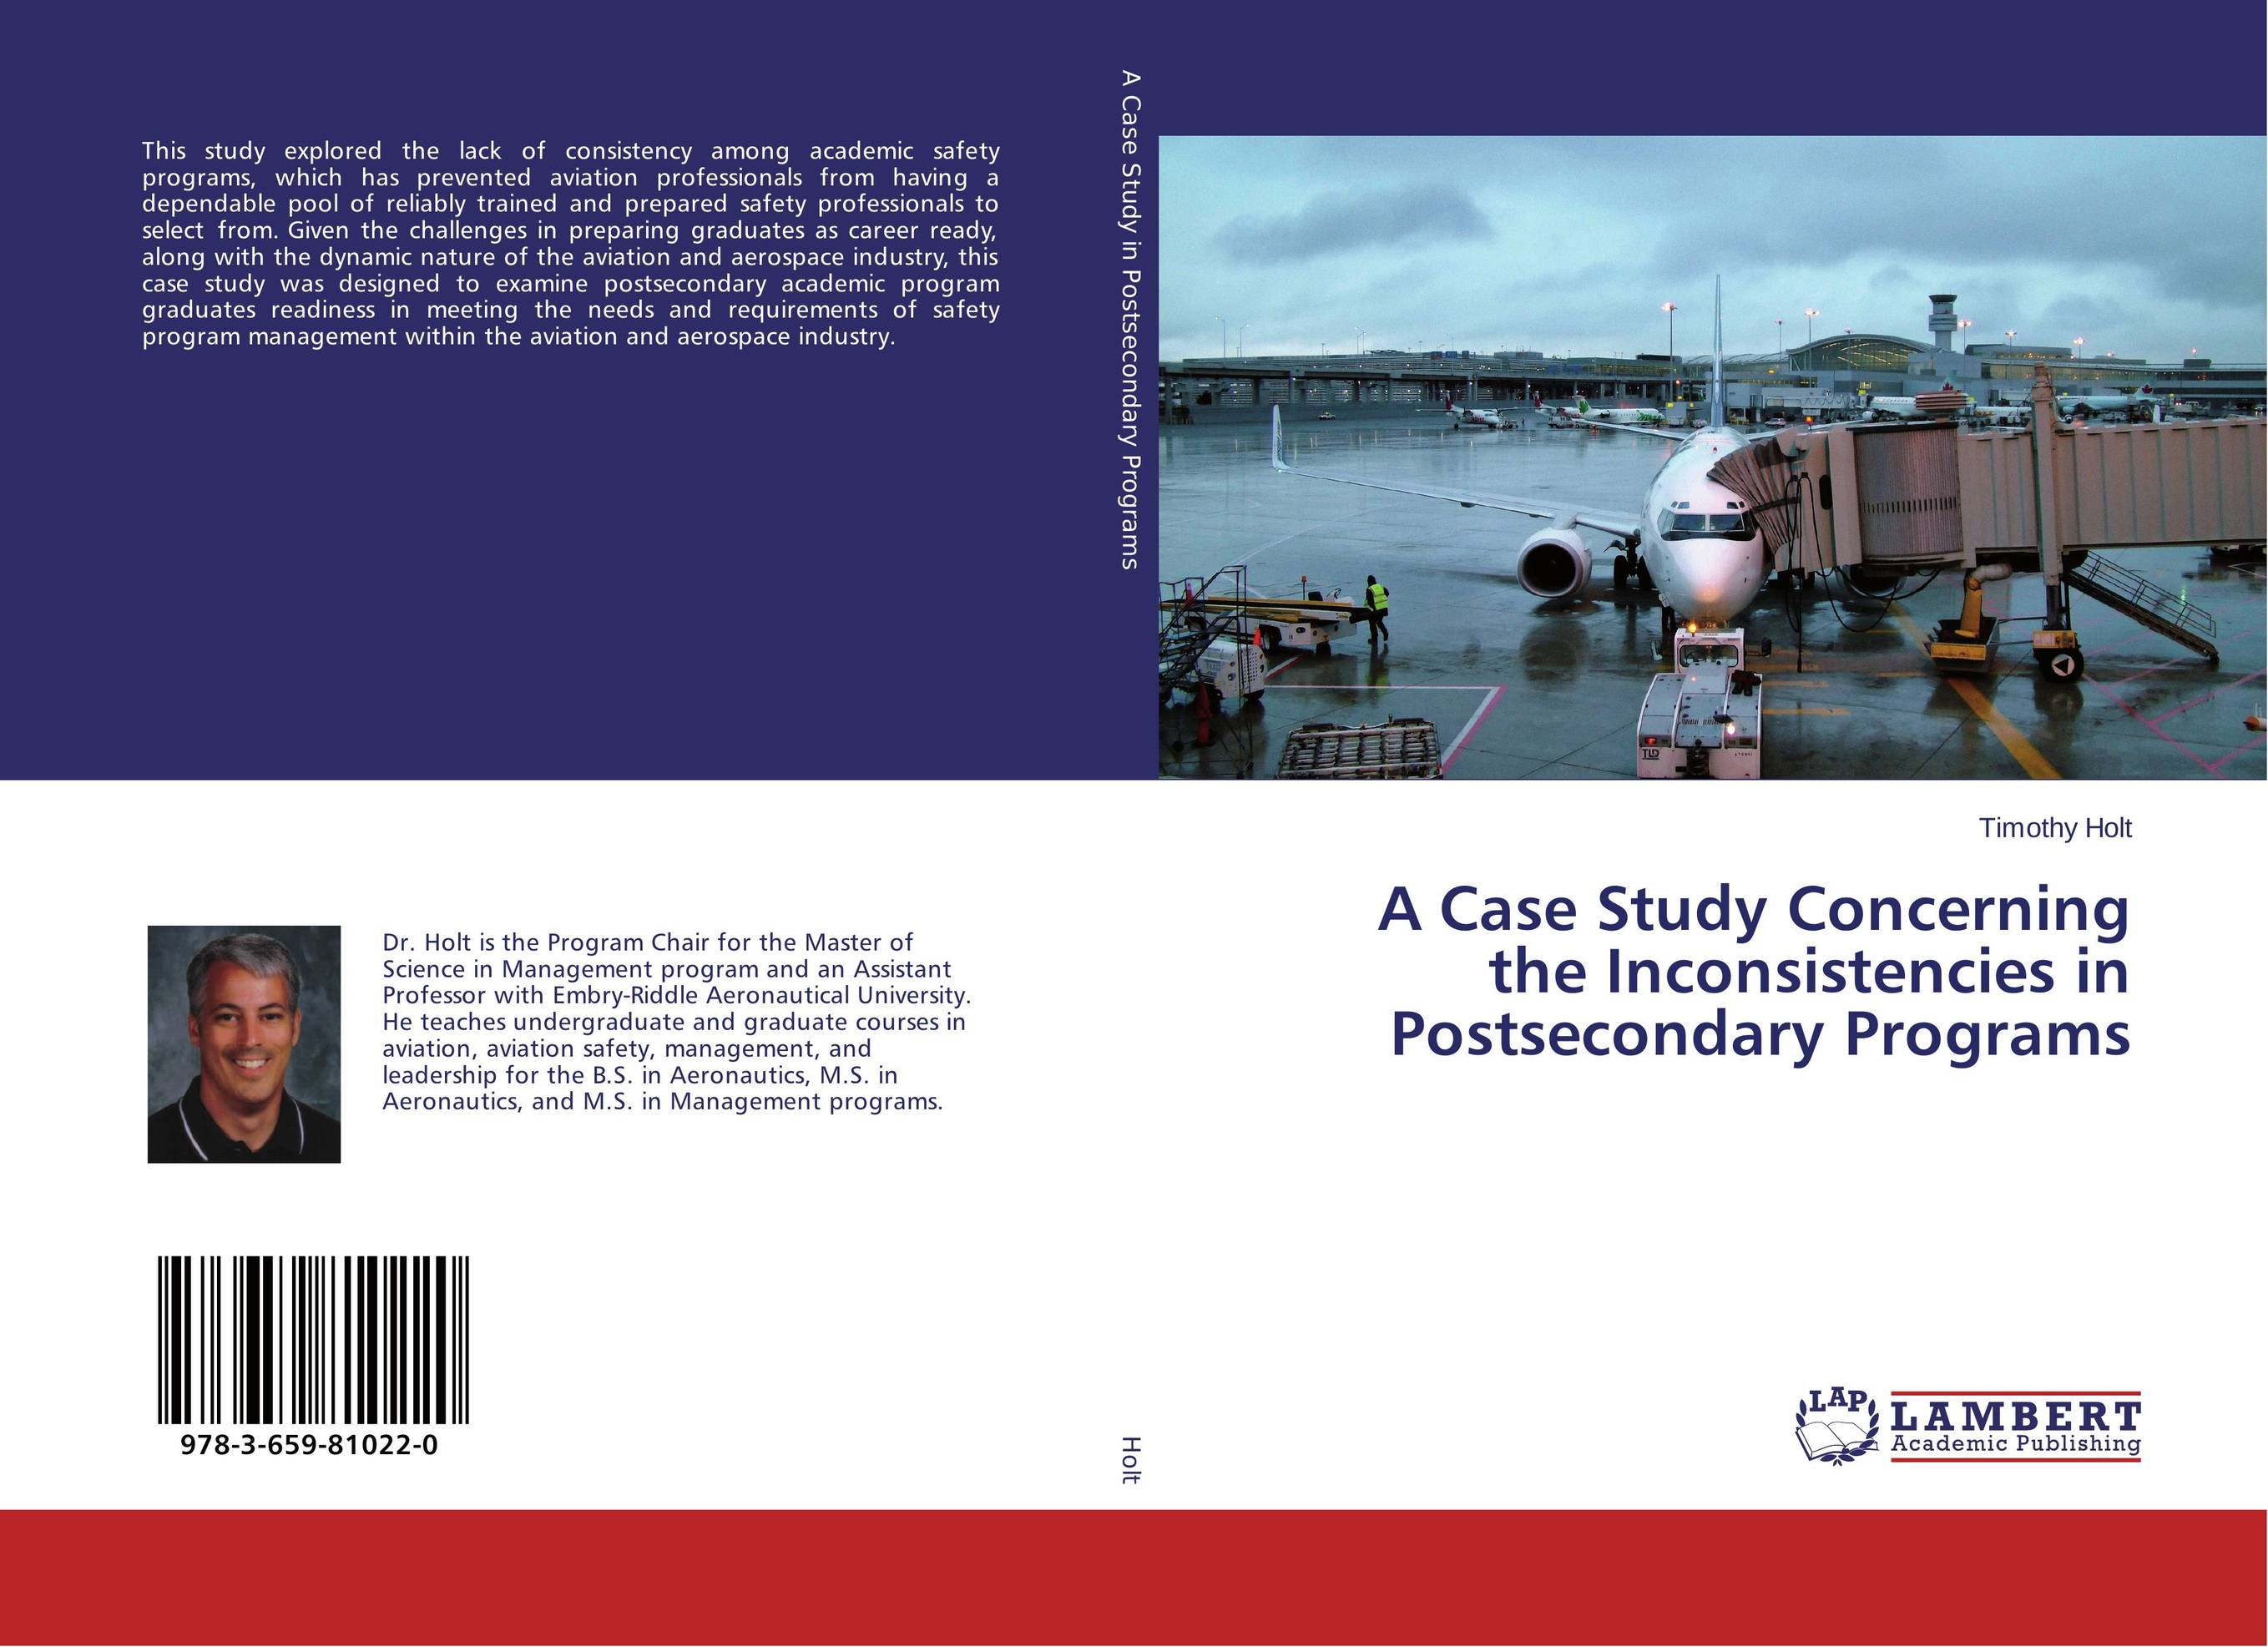 A Case Study Concerning the Inconsistencies in Postsecondary Programs